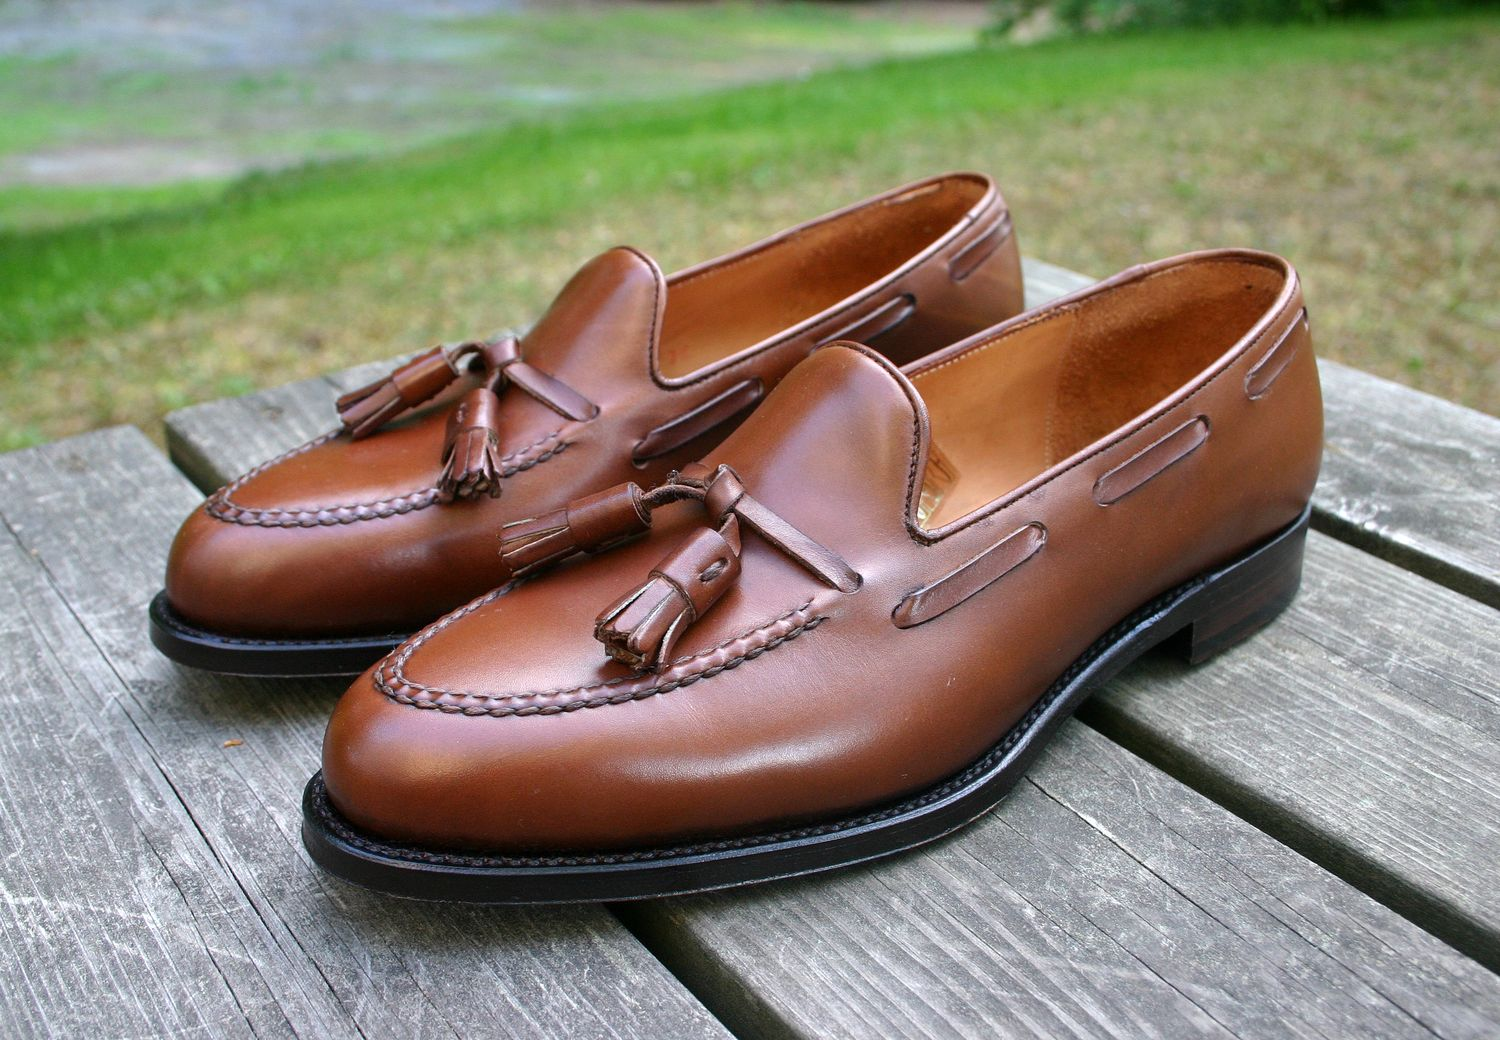 The appeal of Tassel Loafers for men this season is apparent. Loafers are an adaptable shoe to both casual and formal outfits. So if you are wondering how to wear Tassel Loafers here are some tips: The variety available to you now is devine. For me gentleman the tassel loafer looks great with.